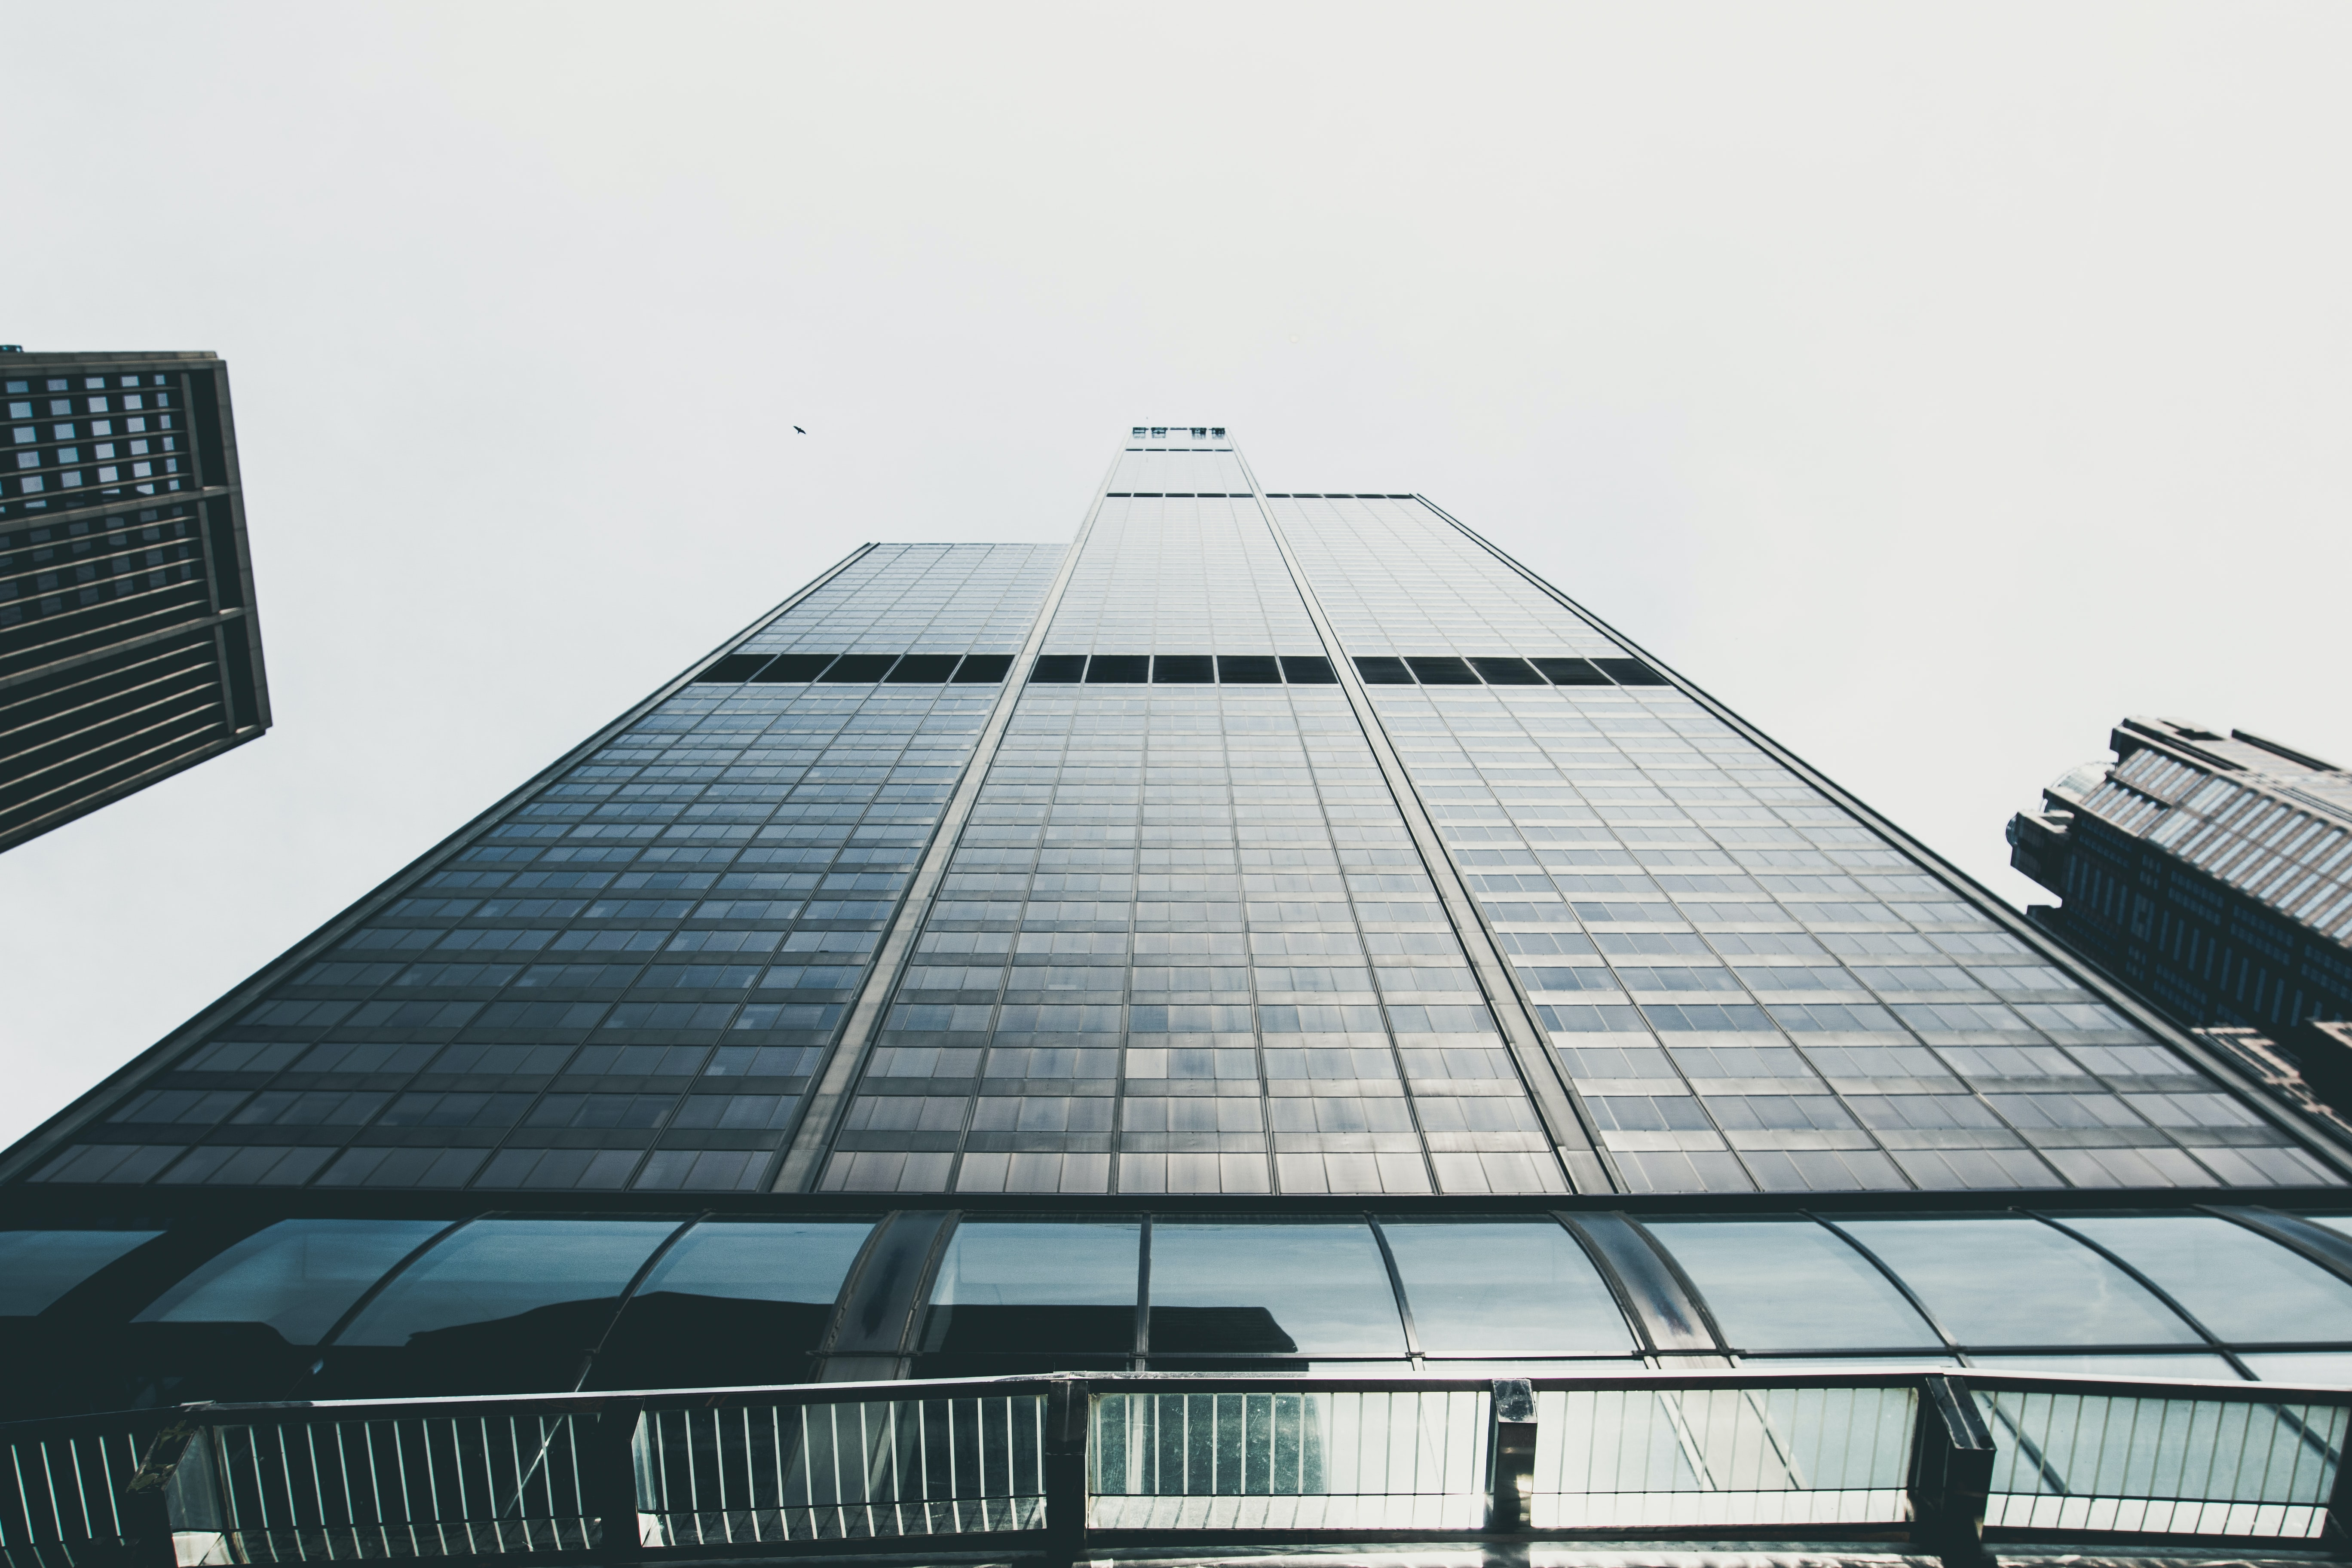 The perspective from the popular Willis Tower Skydeck